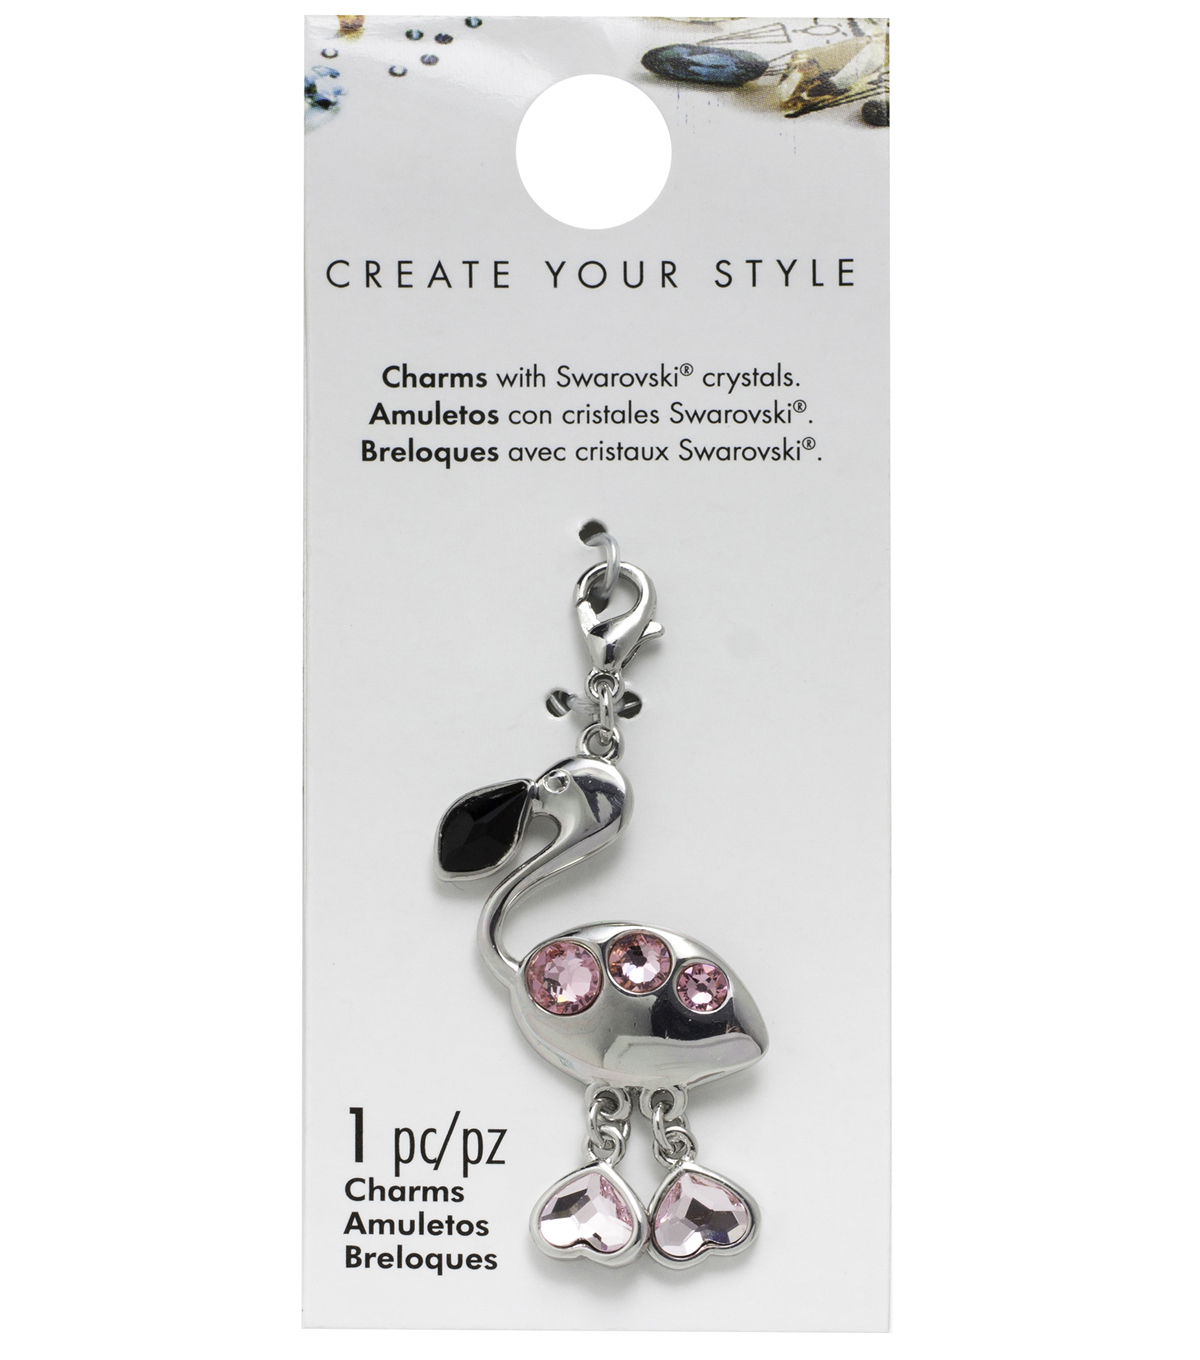 Swarovski Create Your Style Flamingo Charm-Pink & Black Crystals